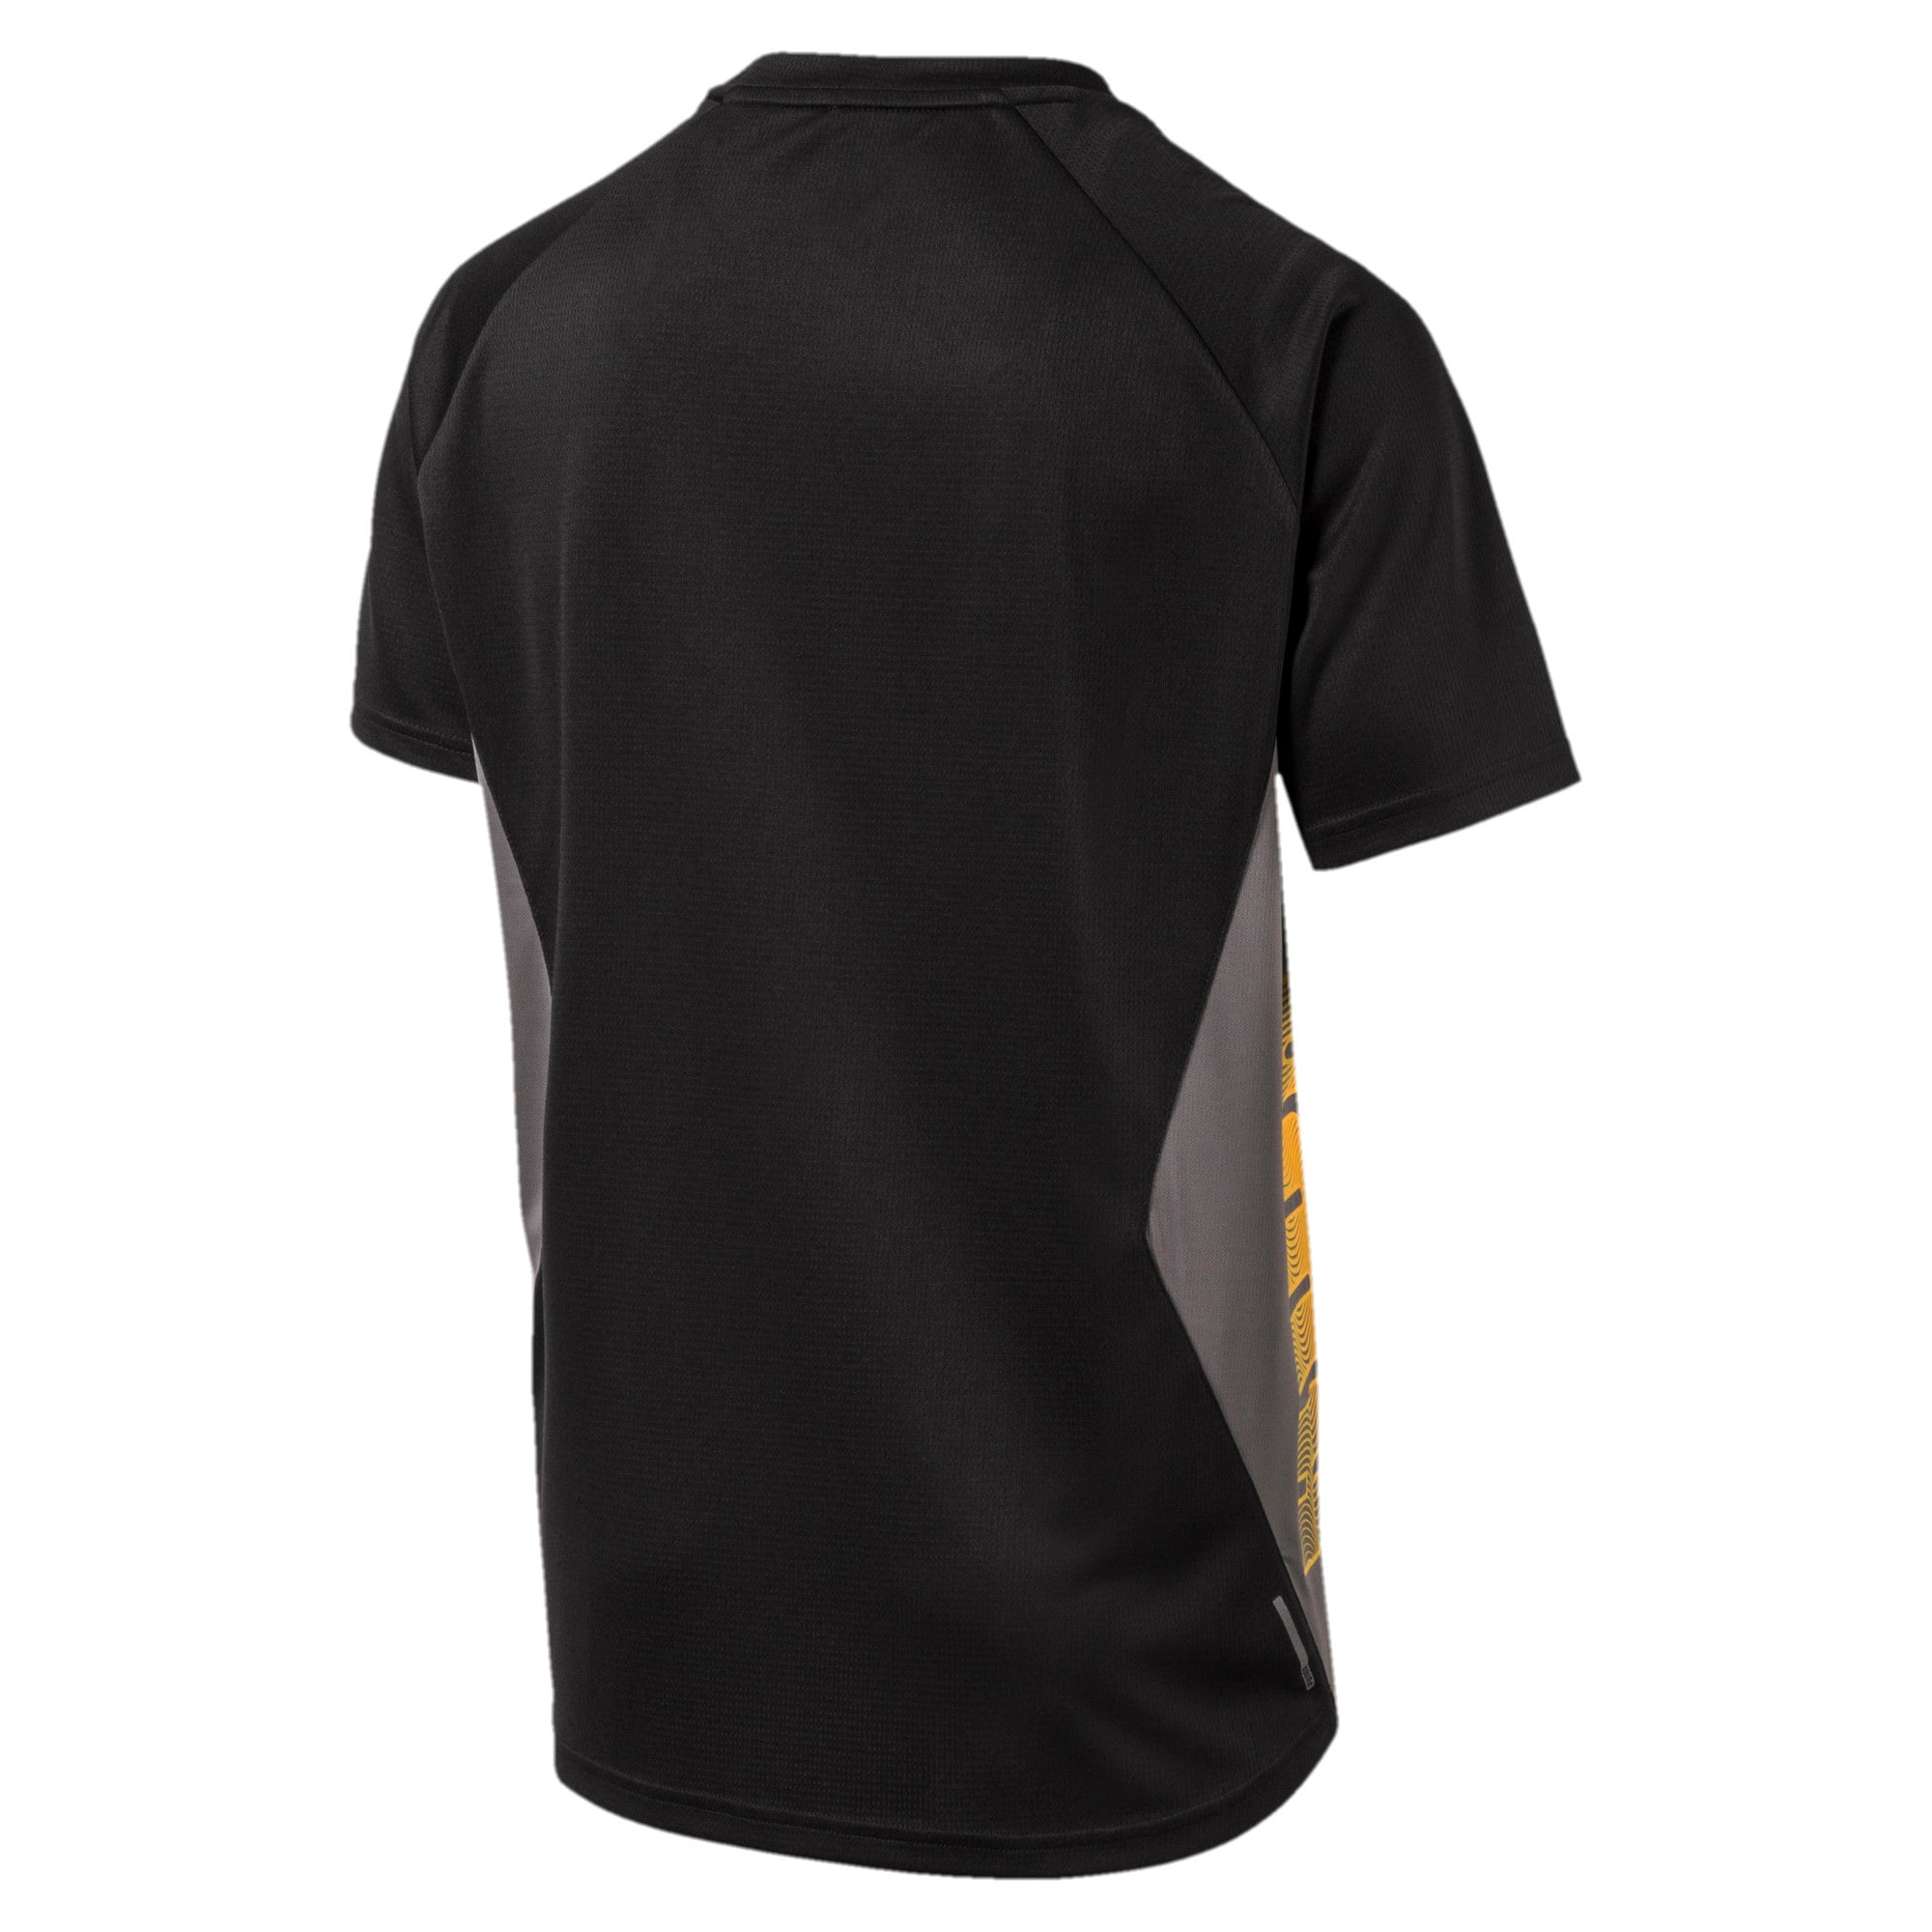 Thumbnail 5 of Collective Loud Men's Tee, CASTLEROCK-Puma Black, medium